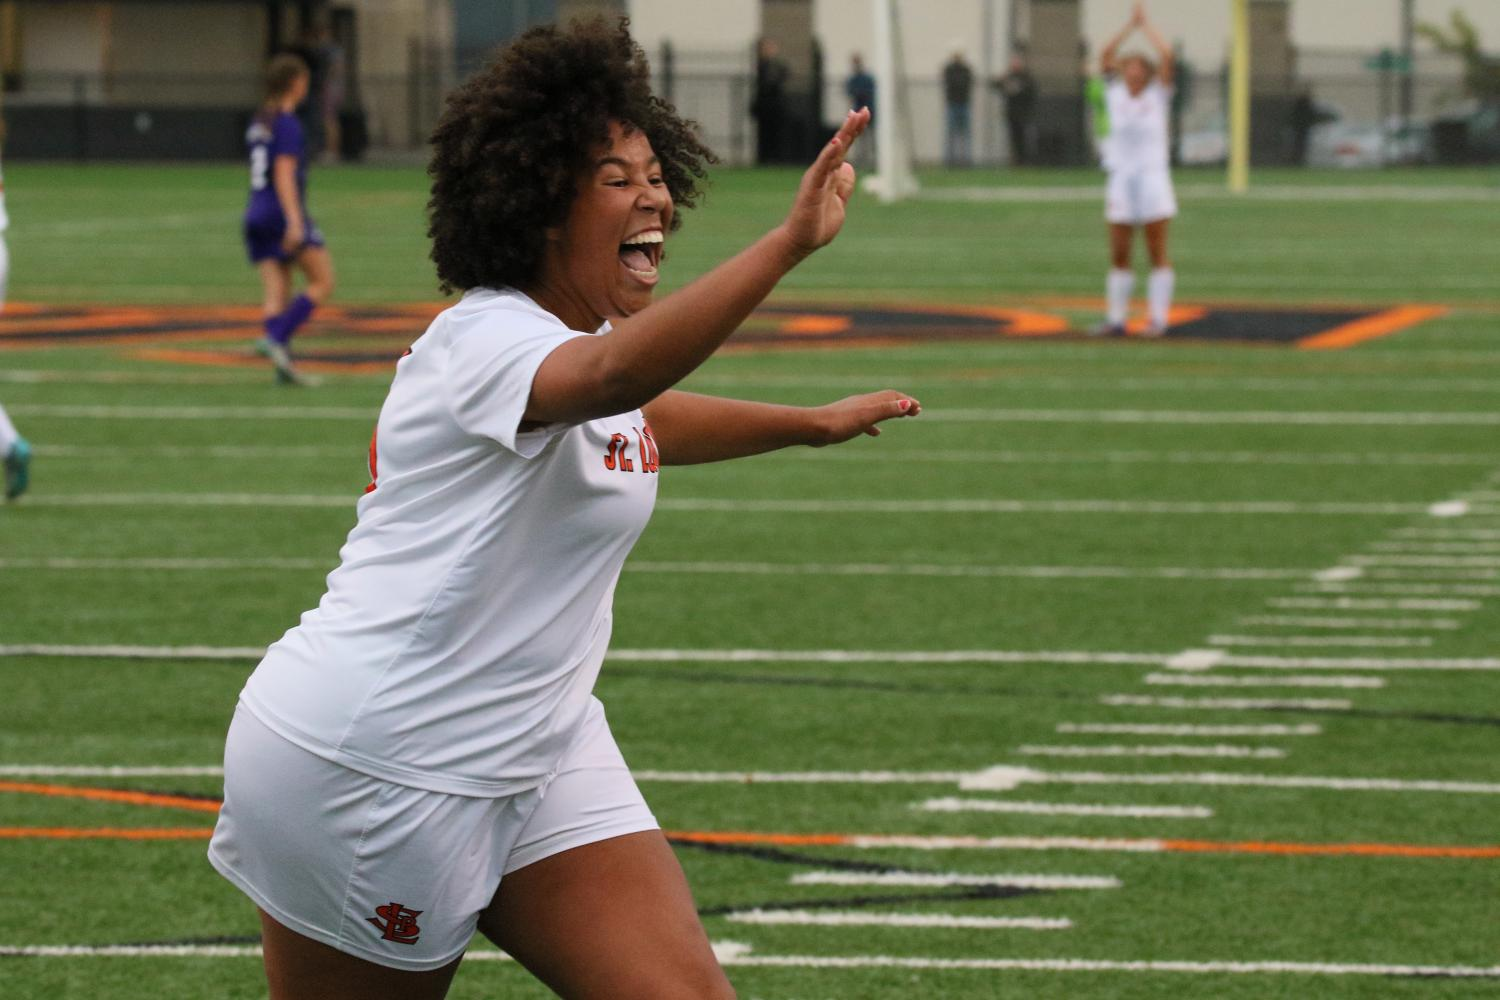 Senior Rosa Sigrunardottir celebrates after scoring a goal against Minneapolis Southwest on September 25th.